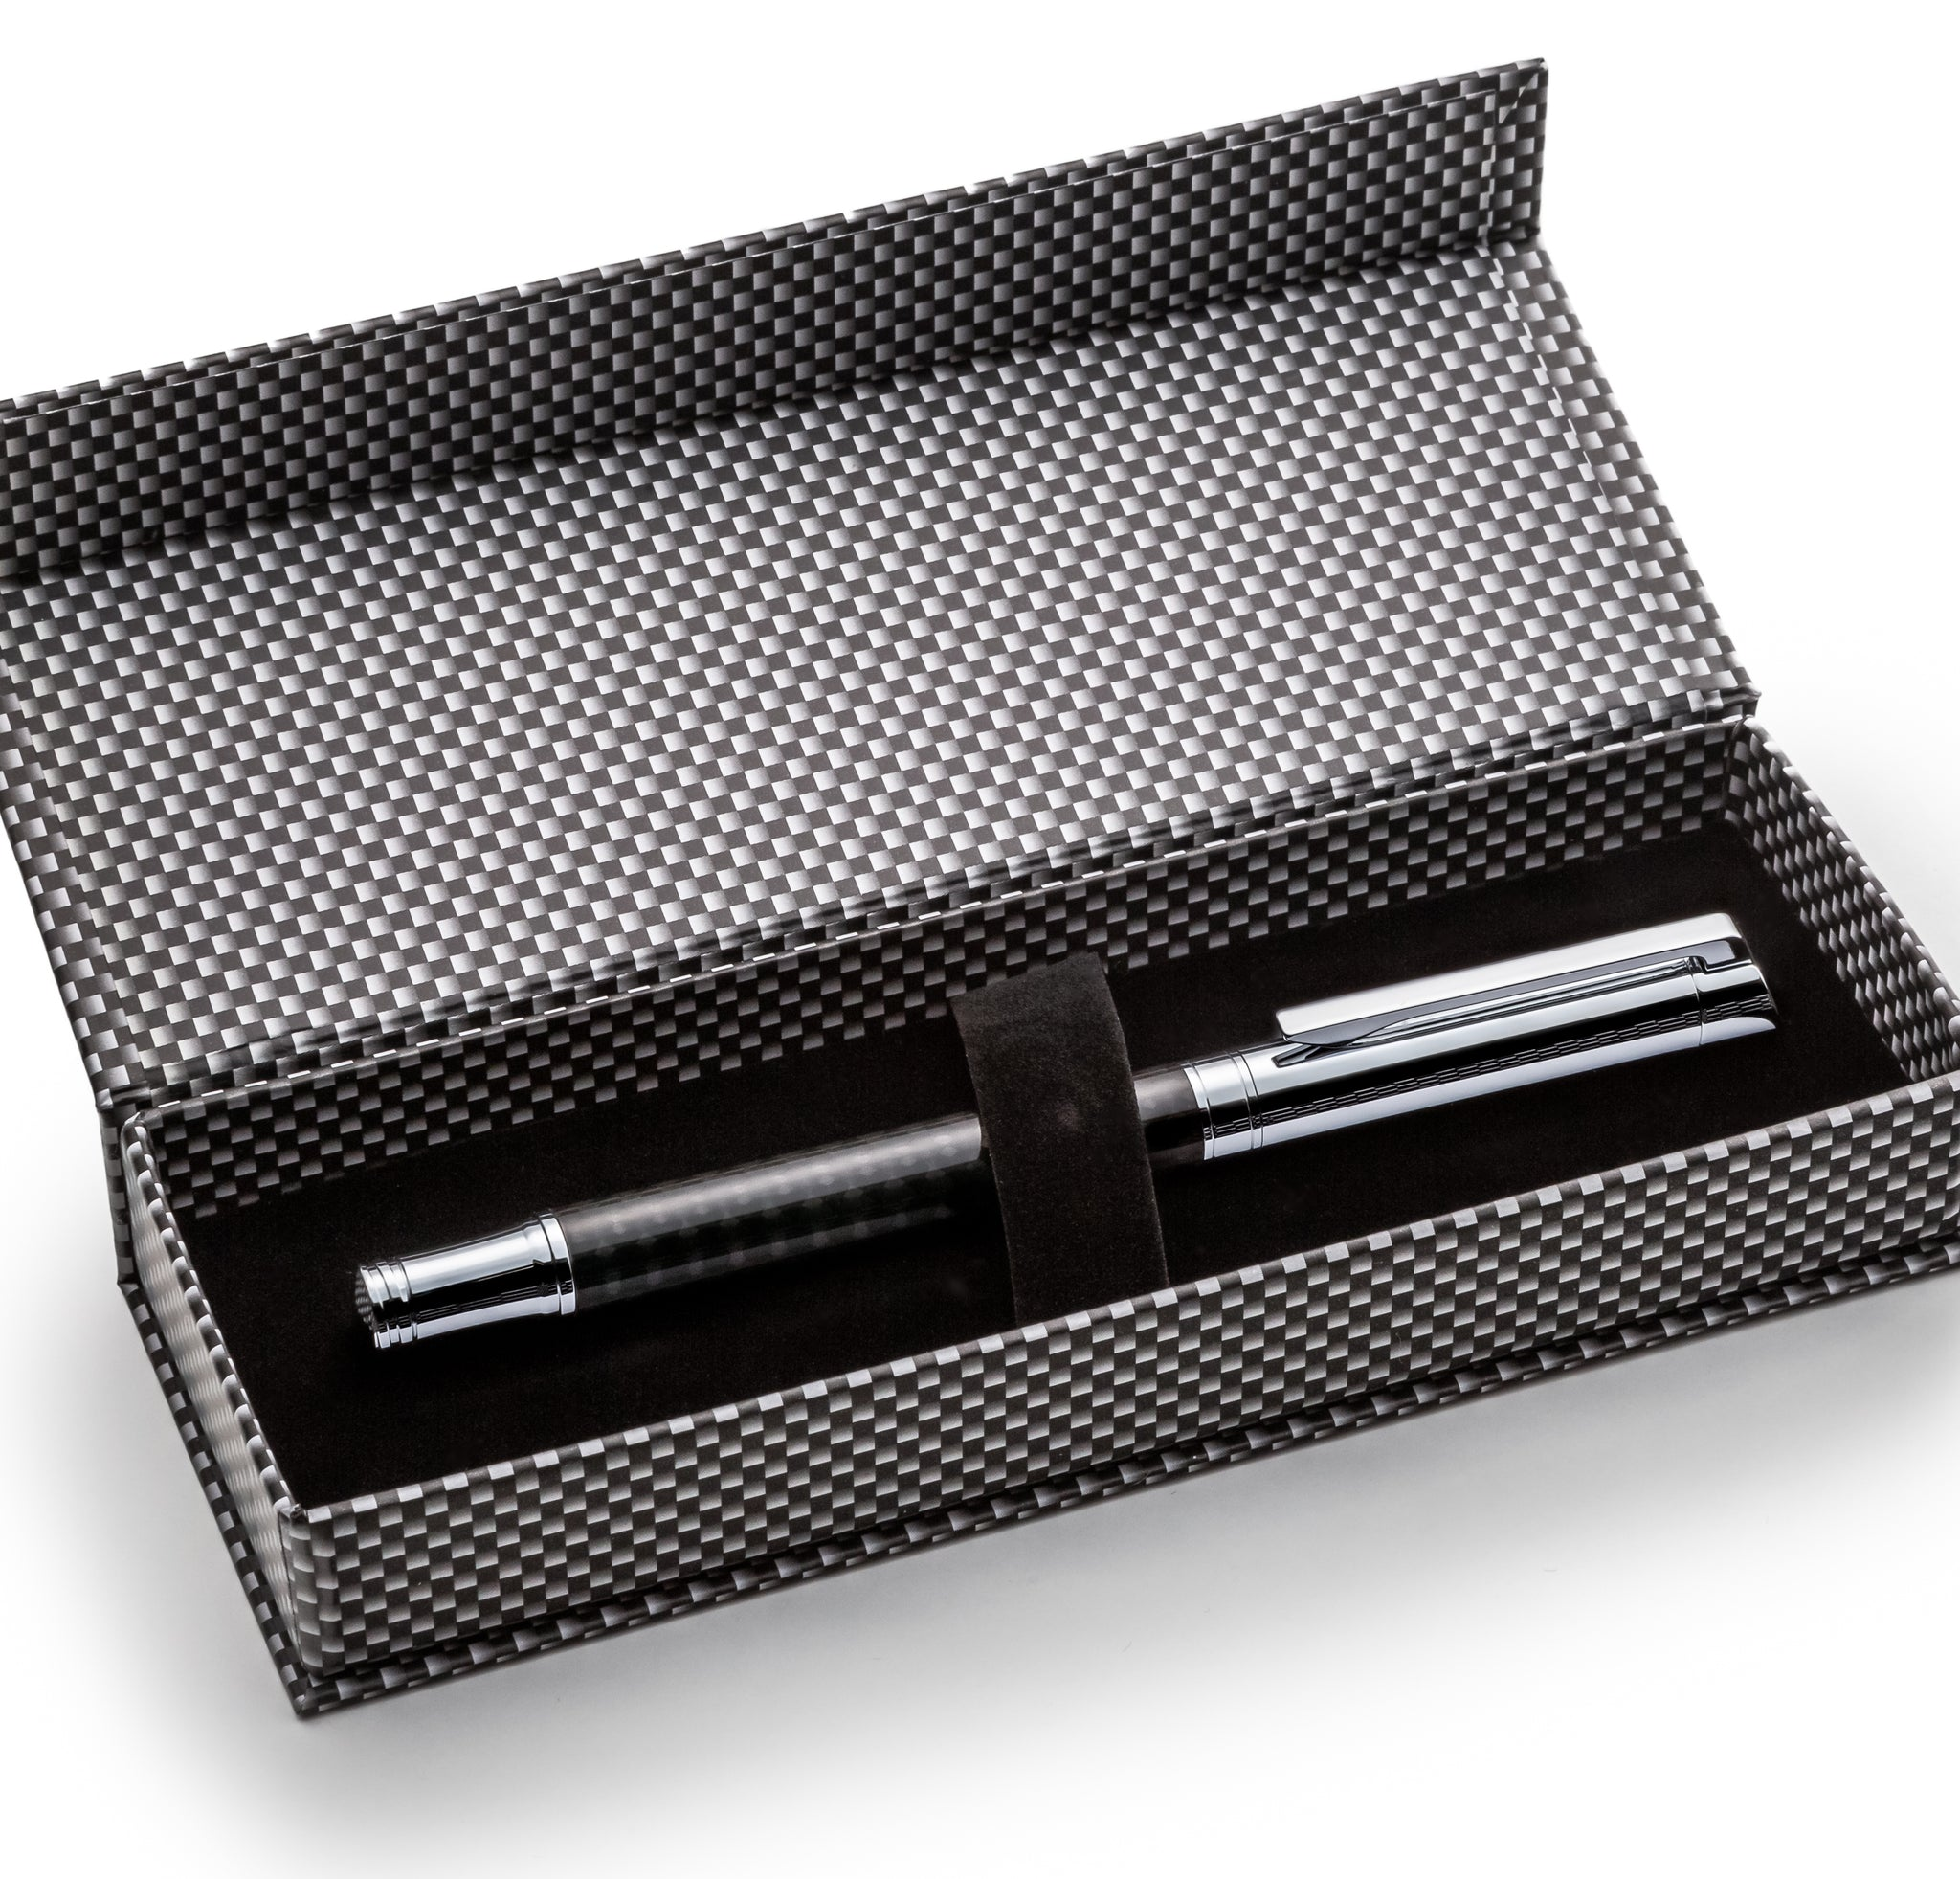 Carbon Fiber Modern Cap Fountain Pen Set W/ German Schmidt Fine Nib & Gift Pen Set